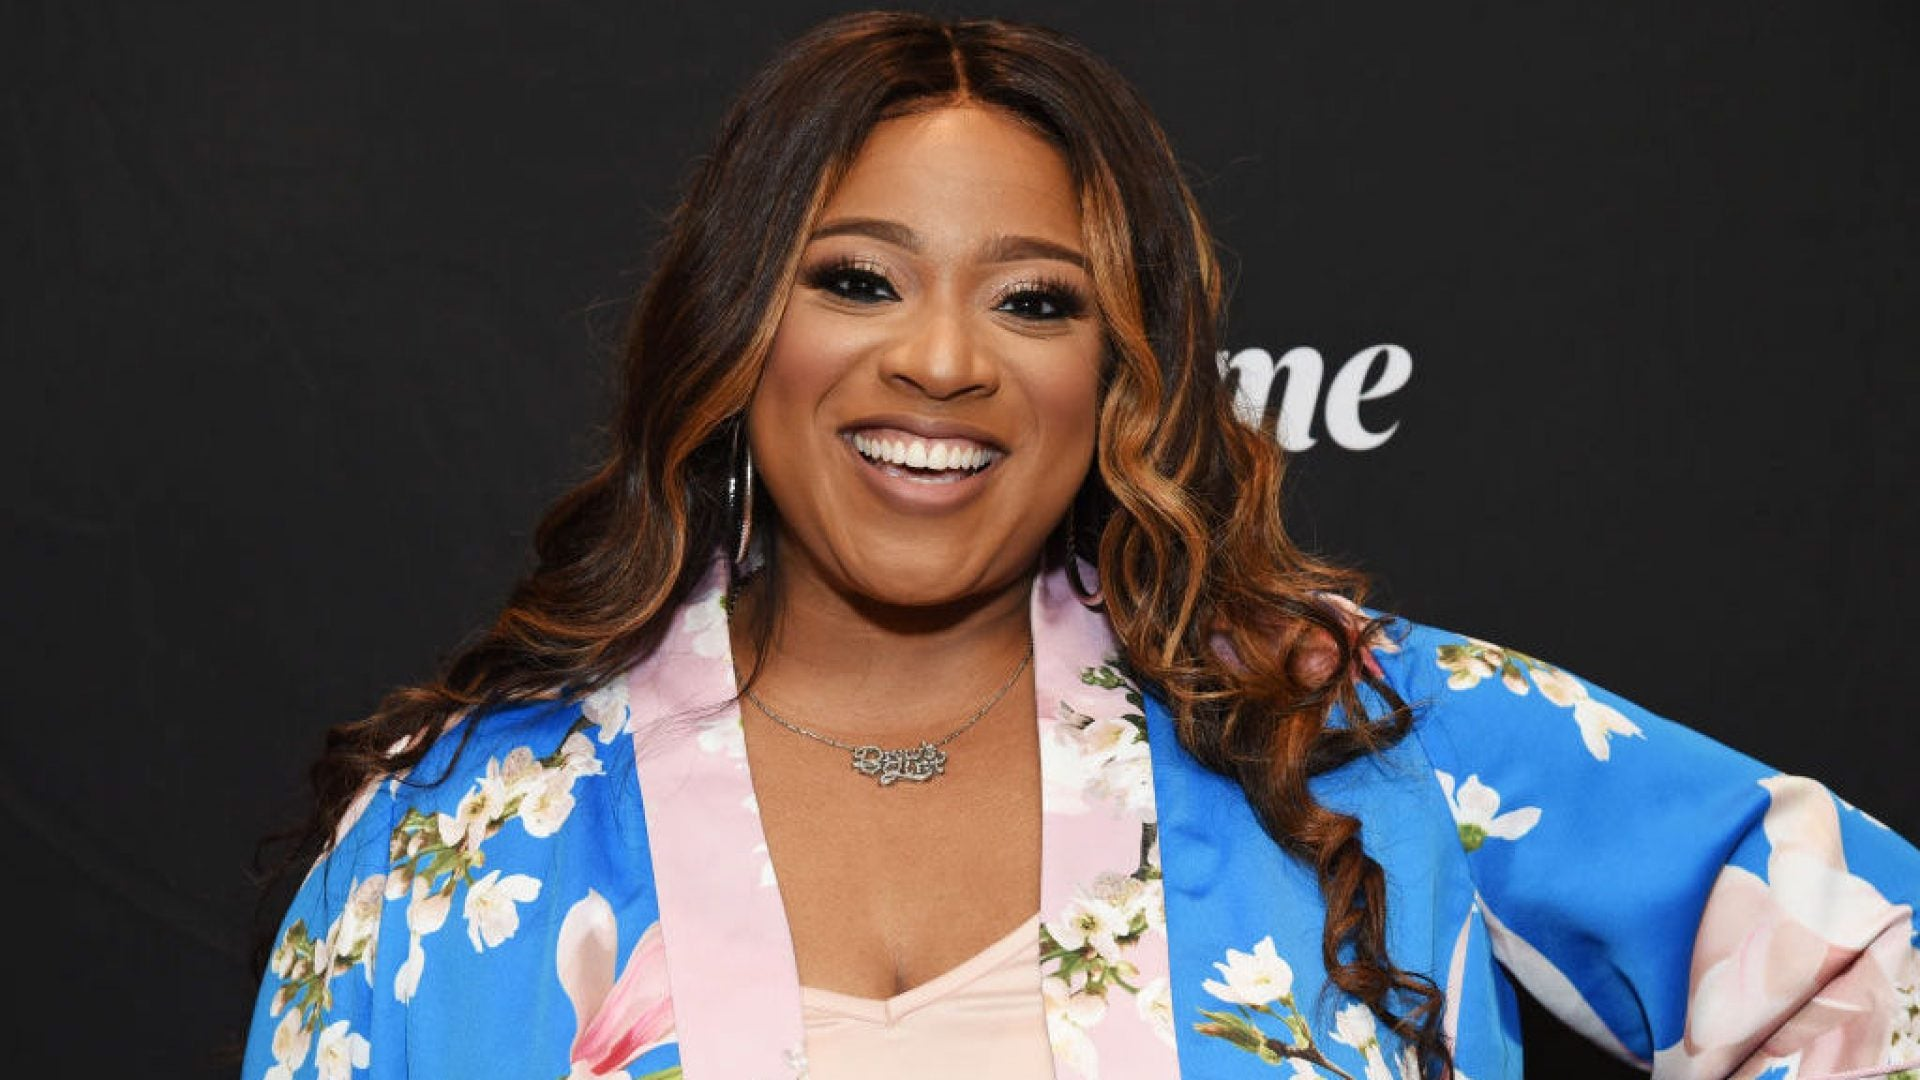 'The Clark Sisters' Star Kierra Sheard Is Engaged